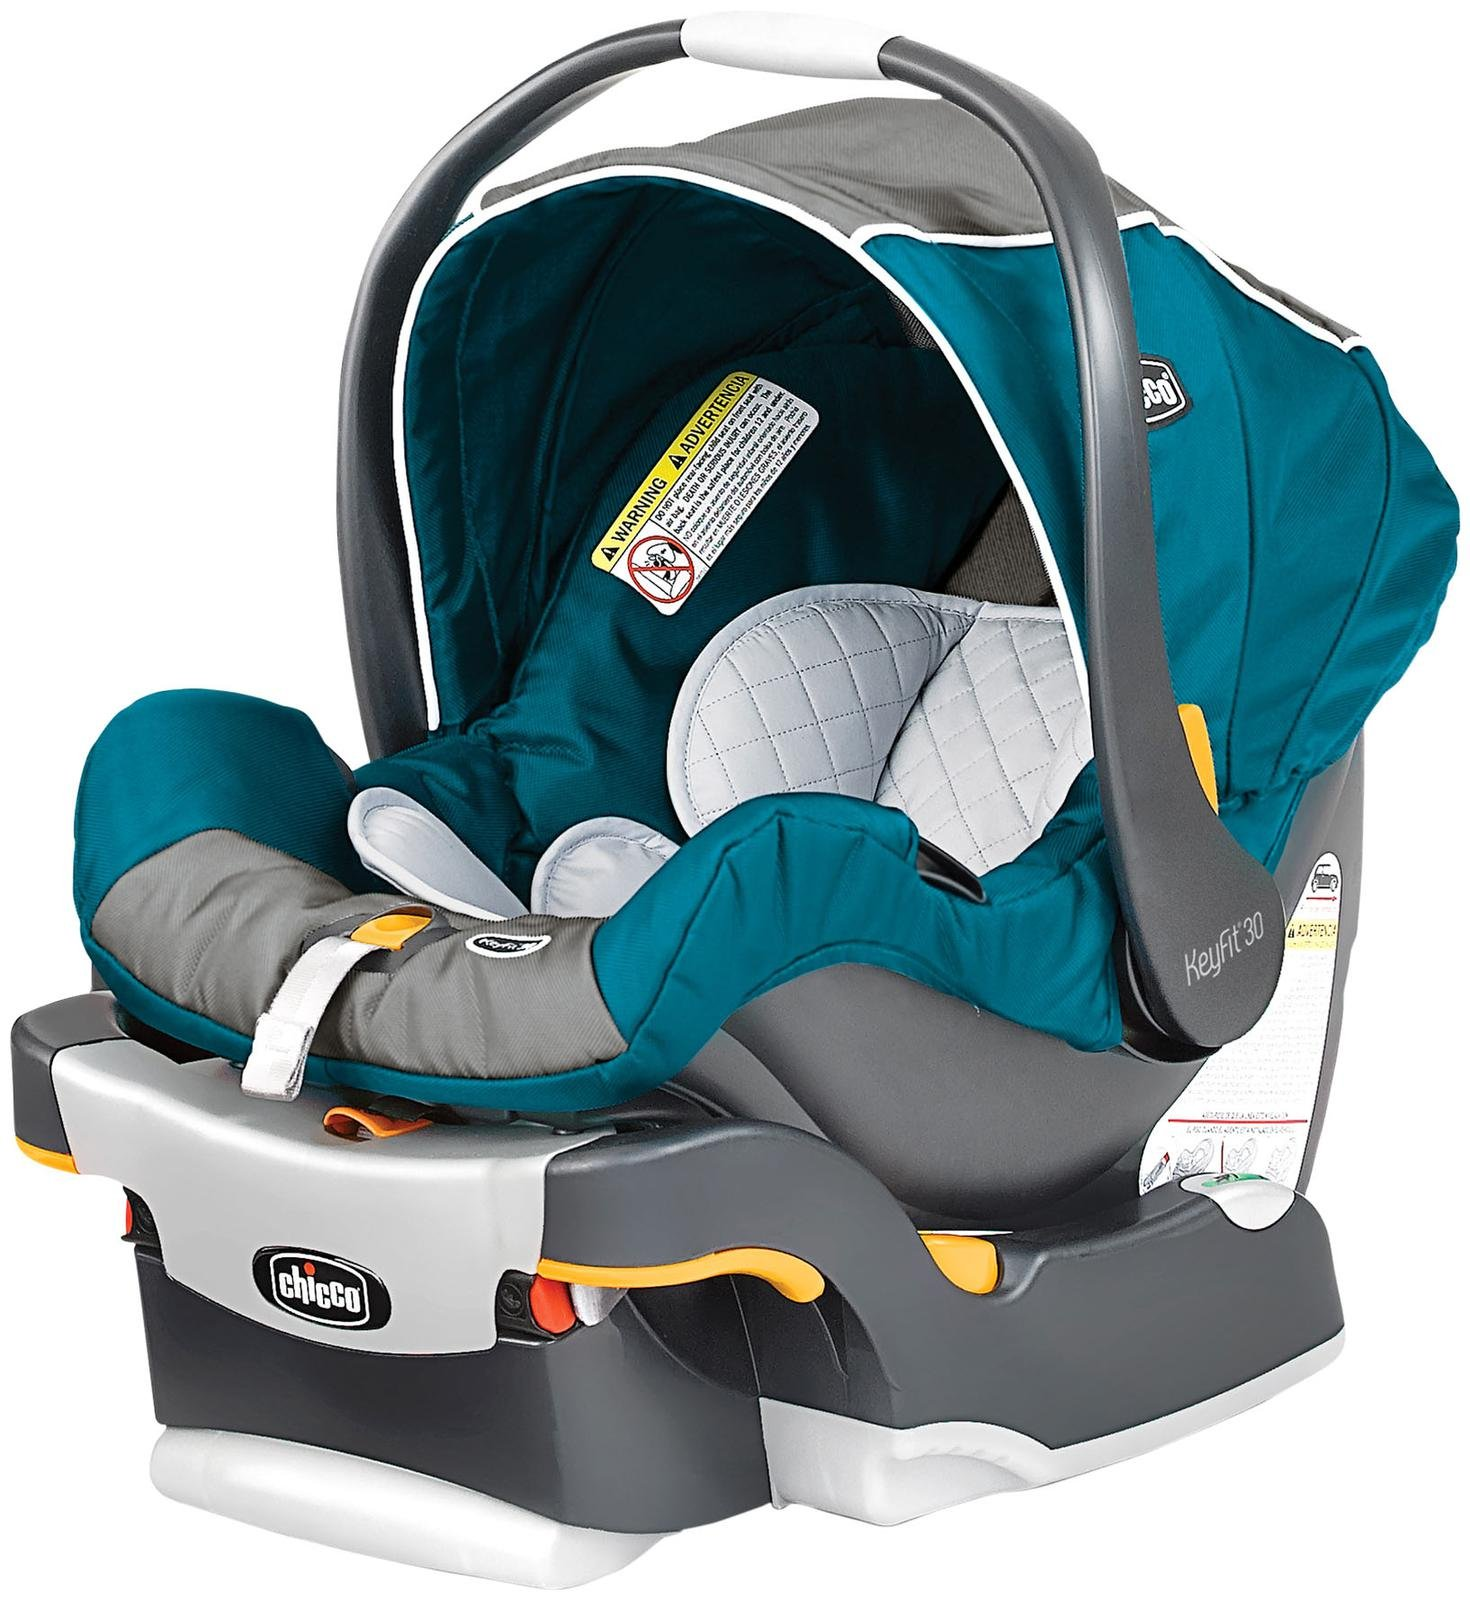 Chicco Keyfit 30 Infant Car Seat - Polaris - 1 ct.